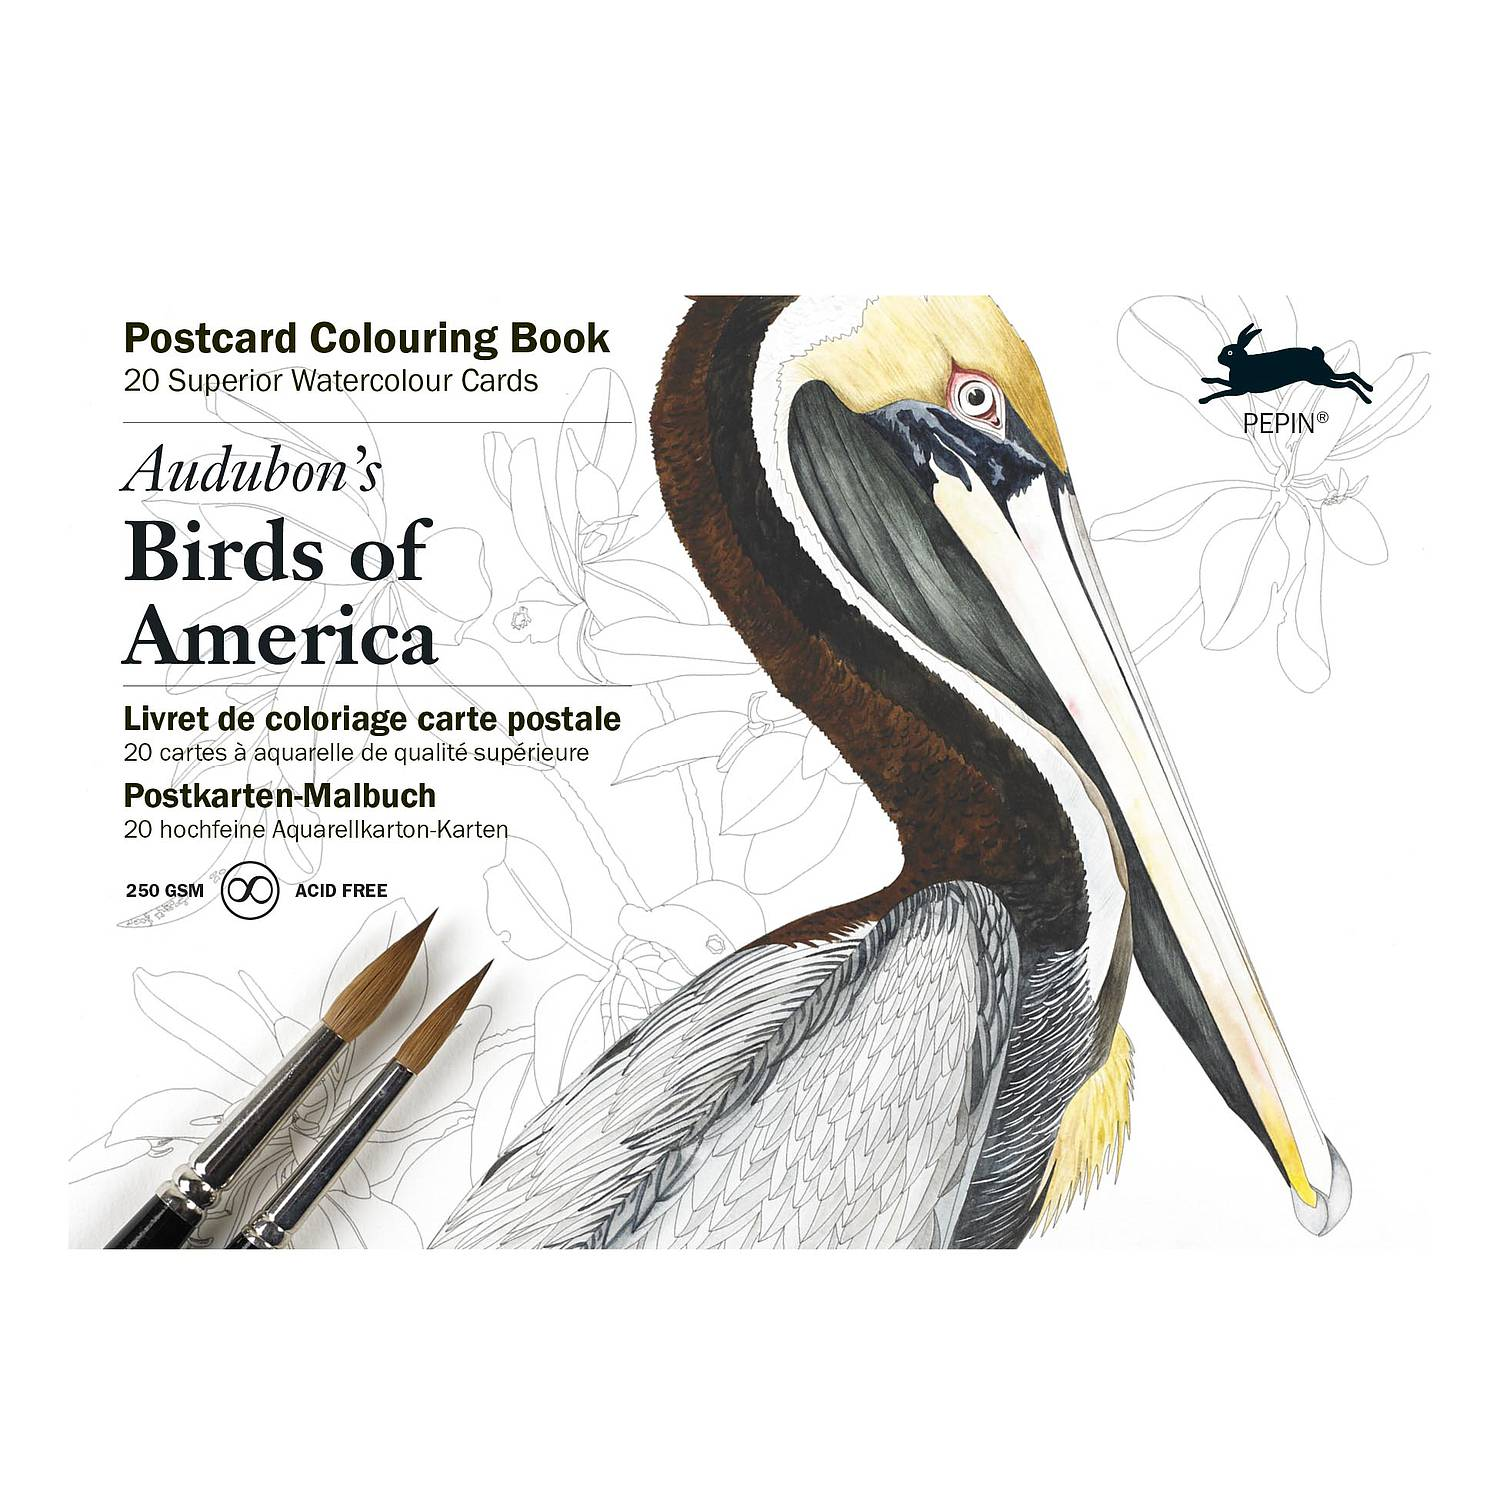 Postcard Colouring Book - Audubons Birds